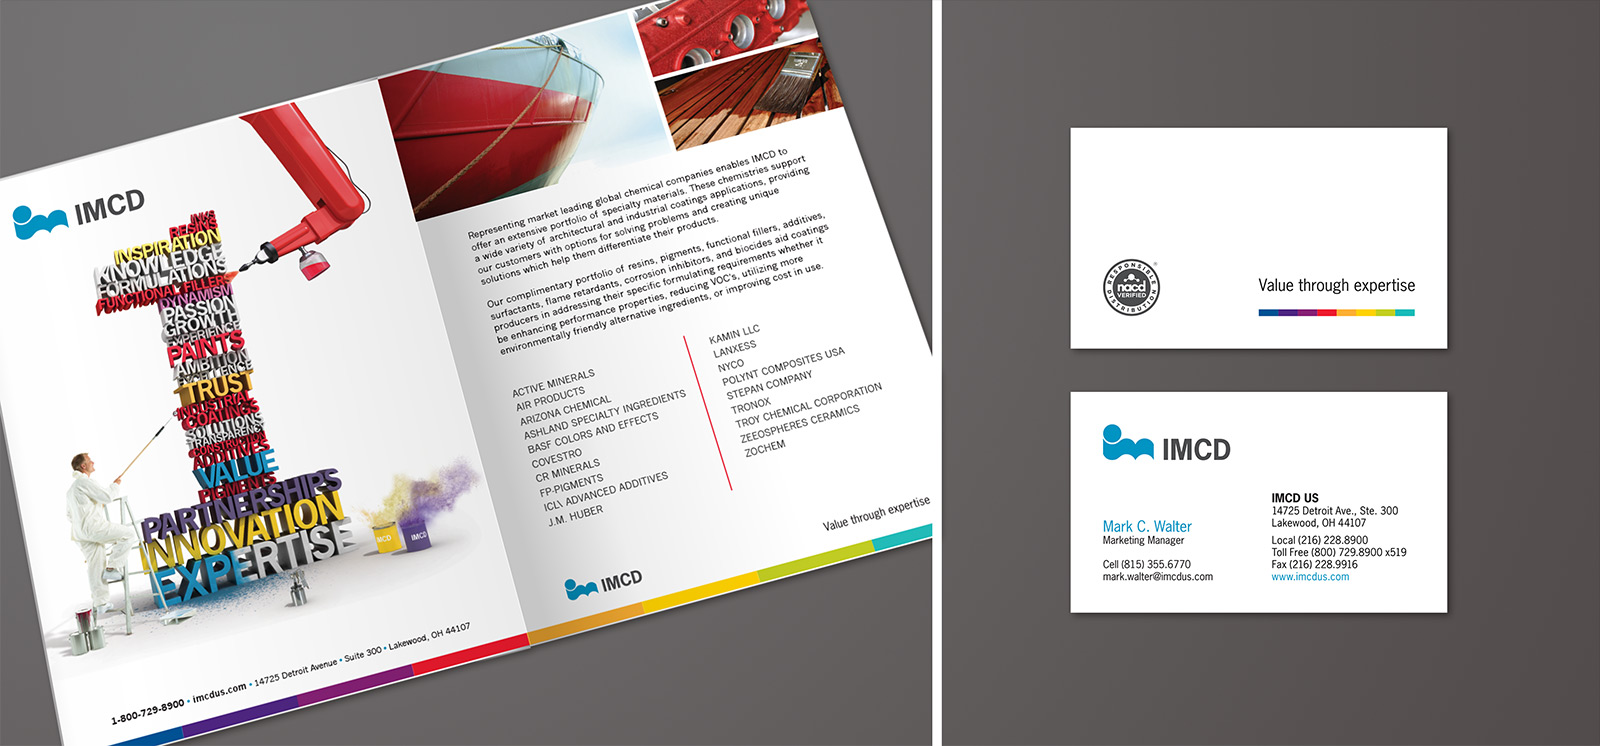 IMCD two page spread layout design / business card graphic design